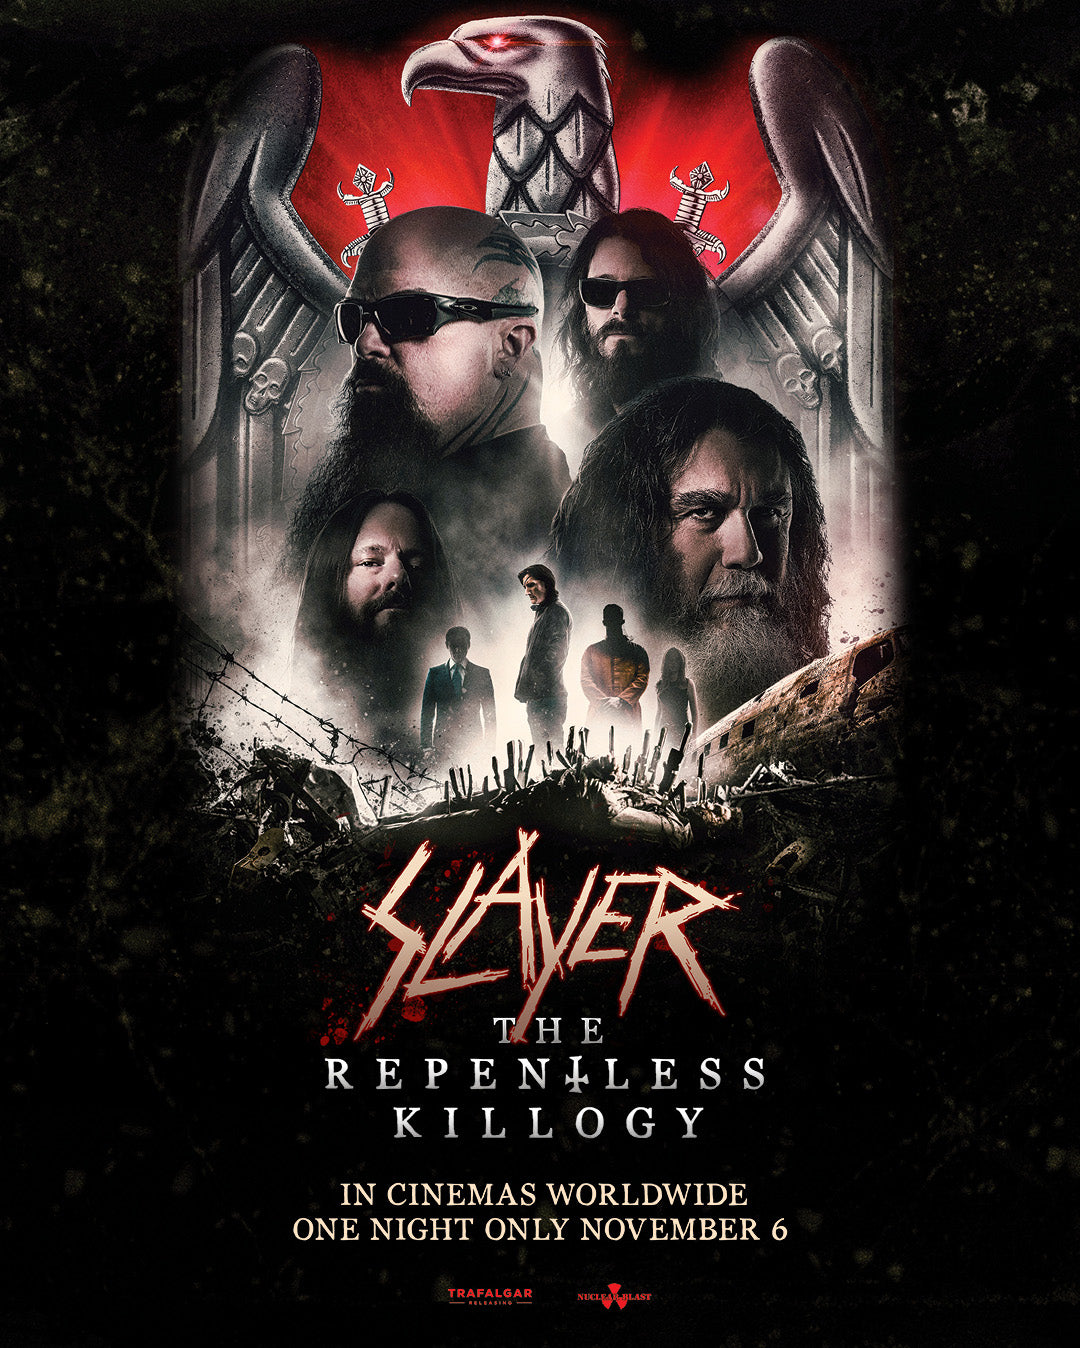 Slayer The Repentless Killogy Poster